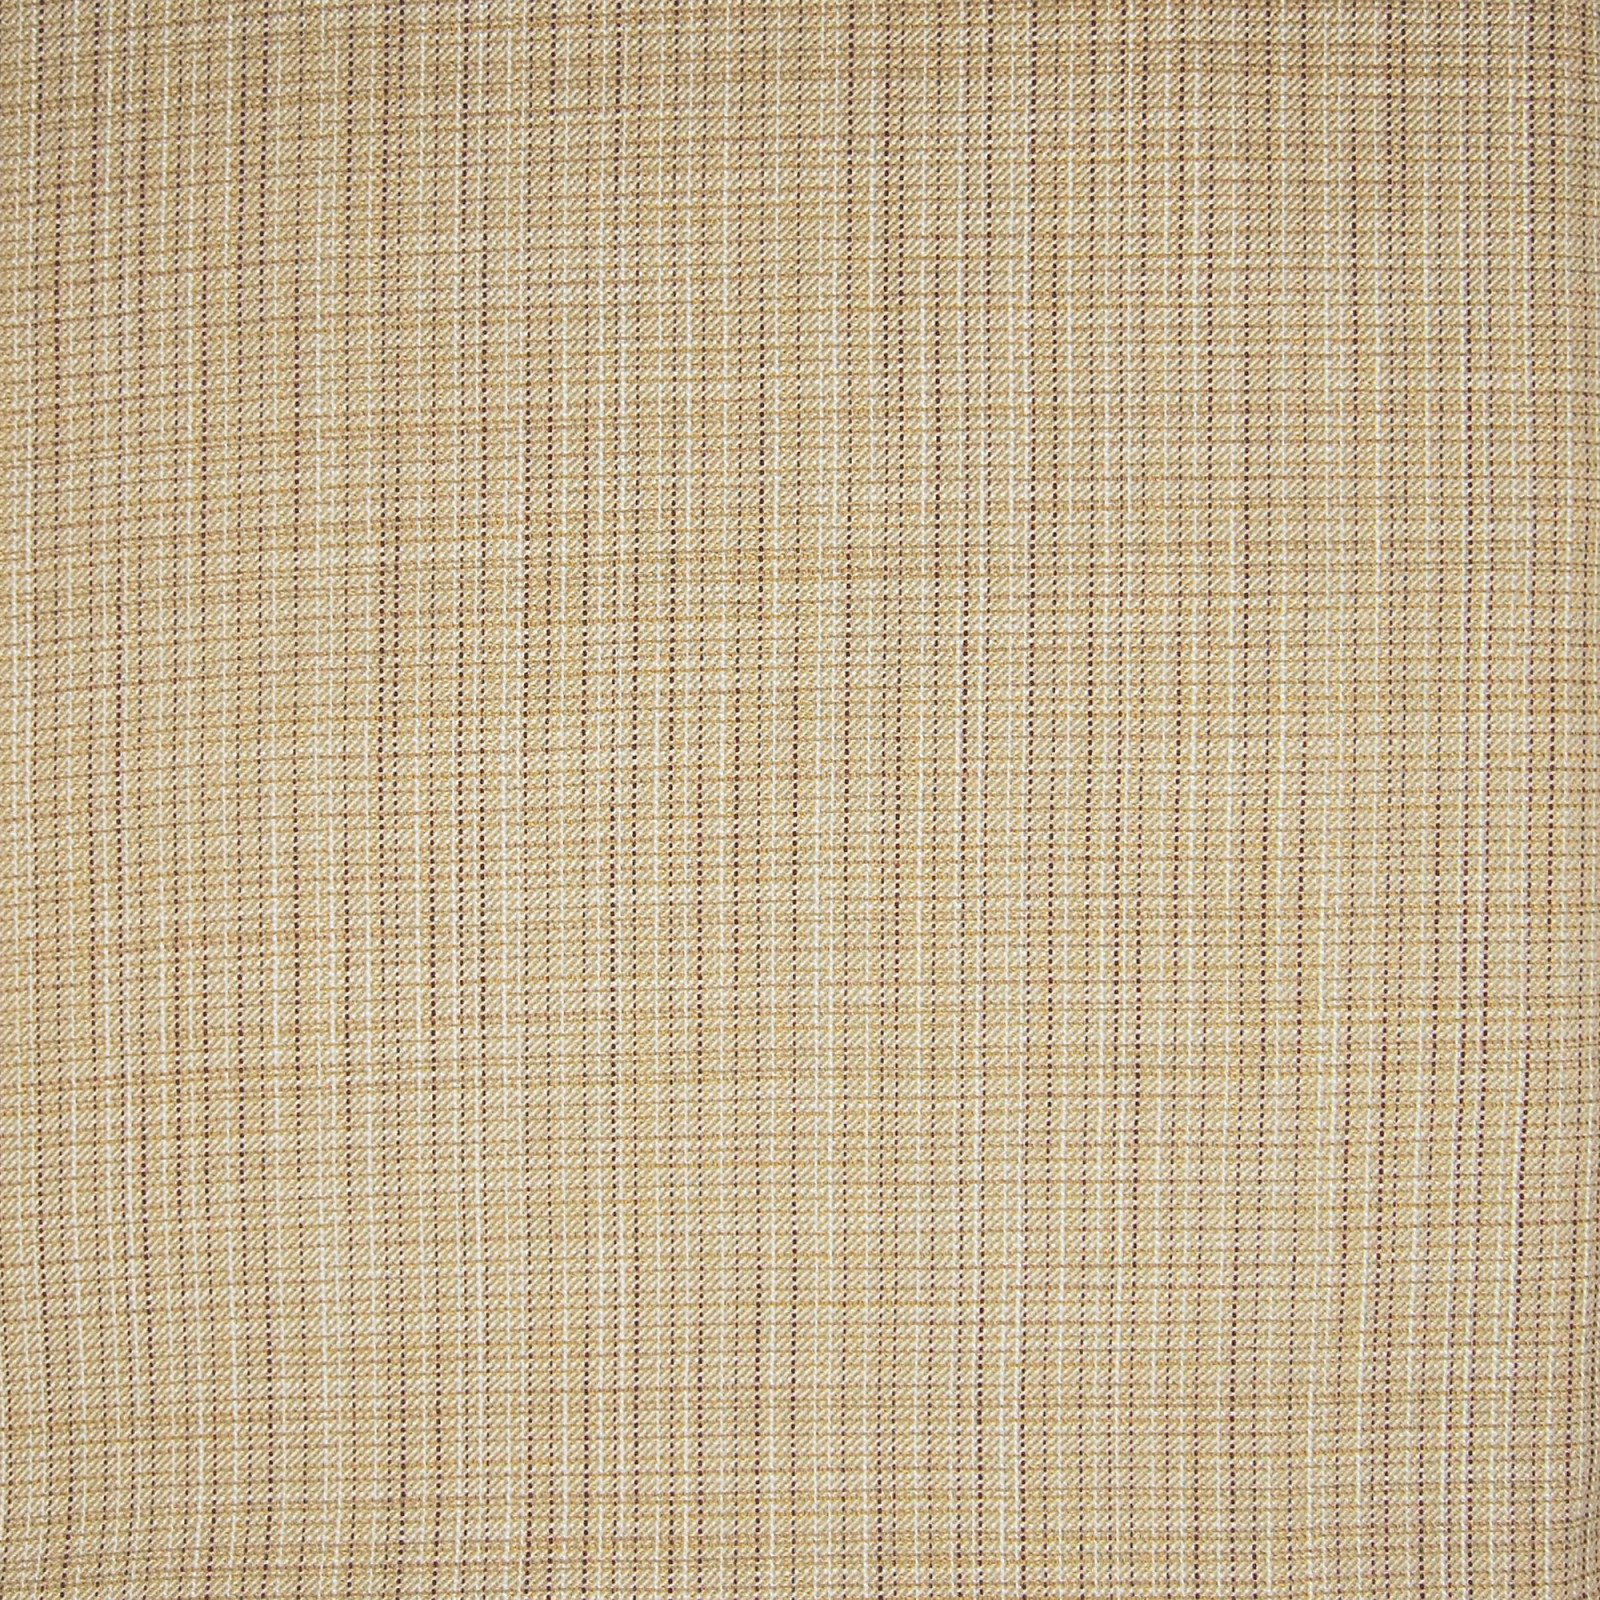 Birch Neutral And Beige Plaid Cotton Upholstery Fabric